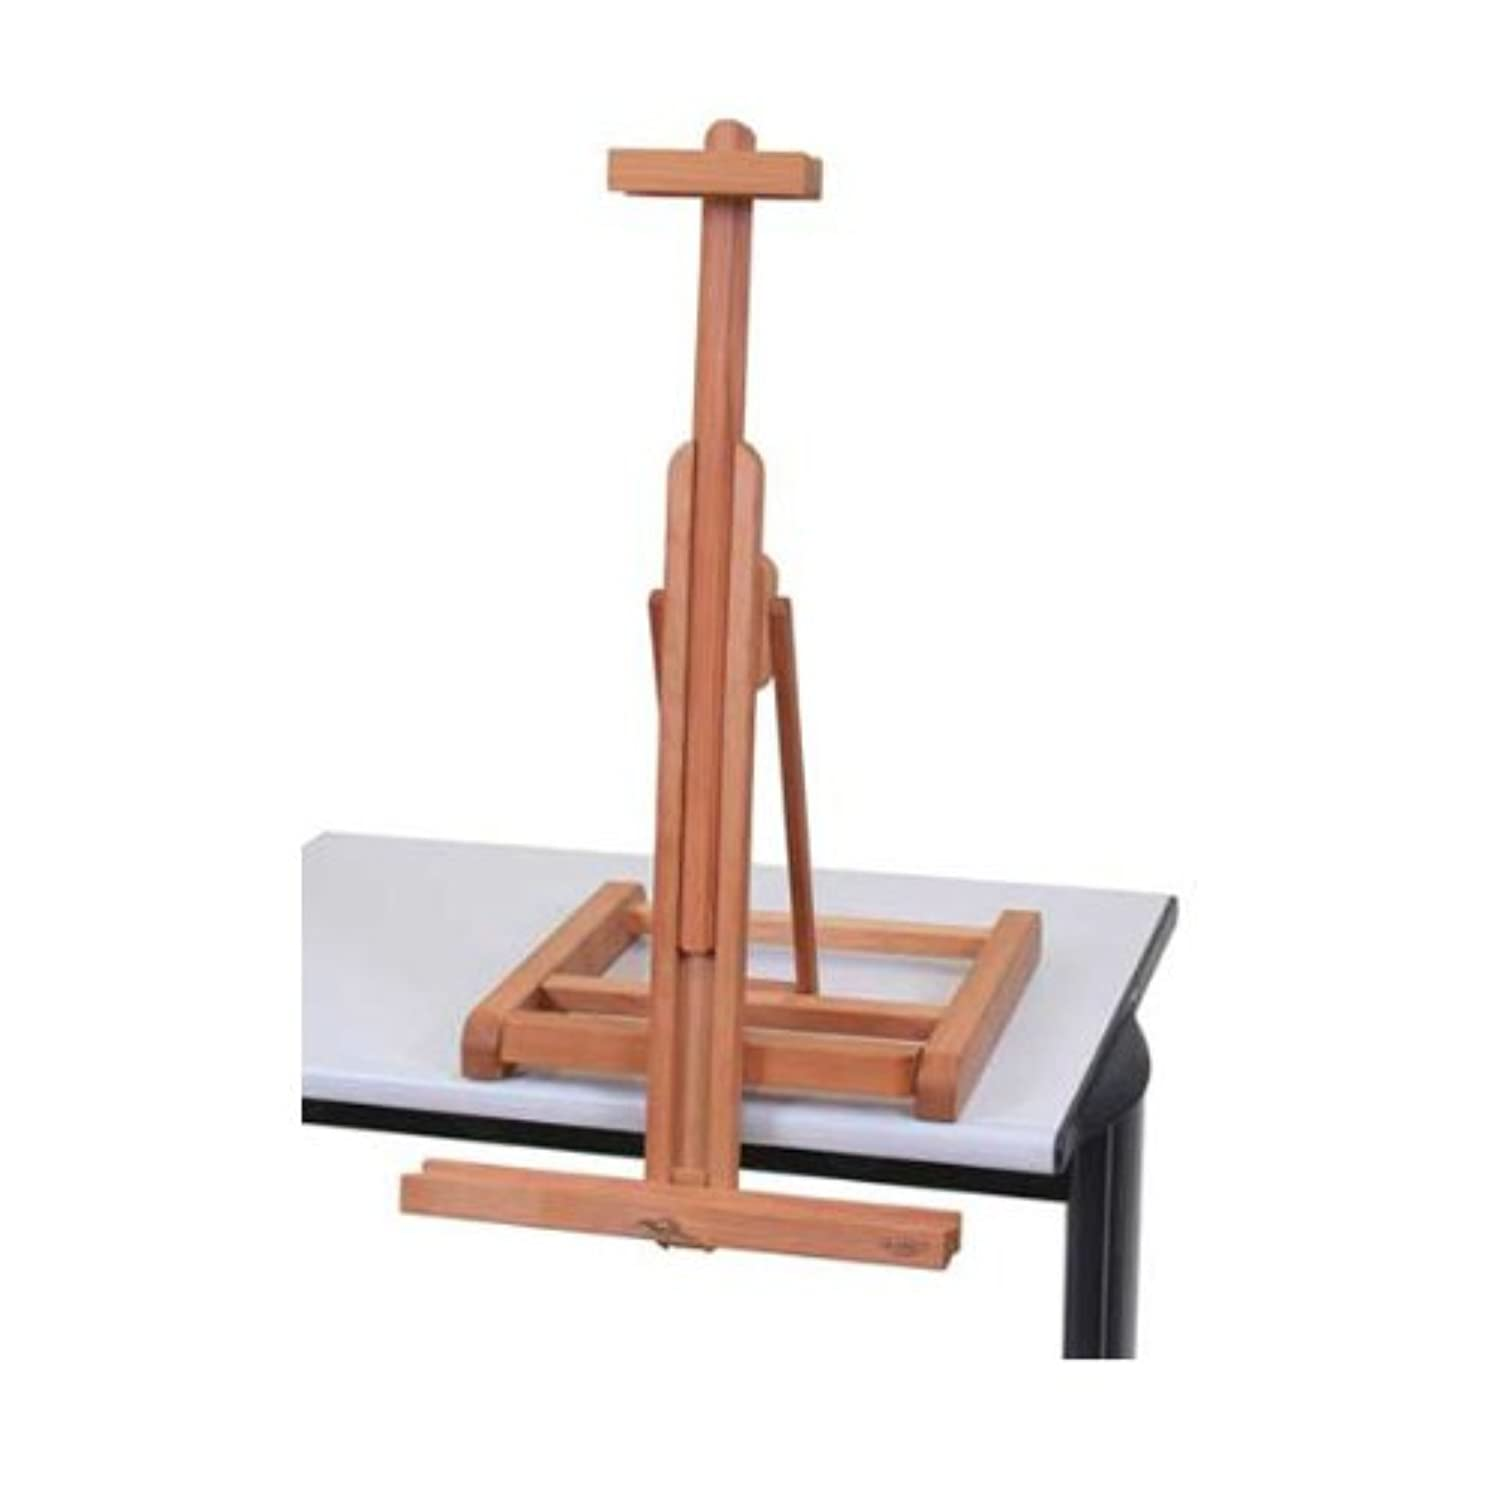 Mabef Table Top Easel (MBM-31)